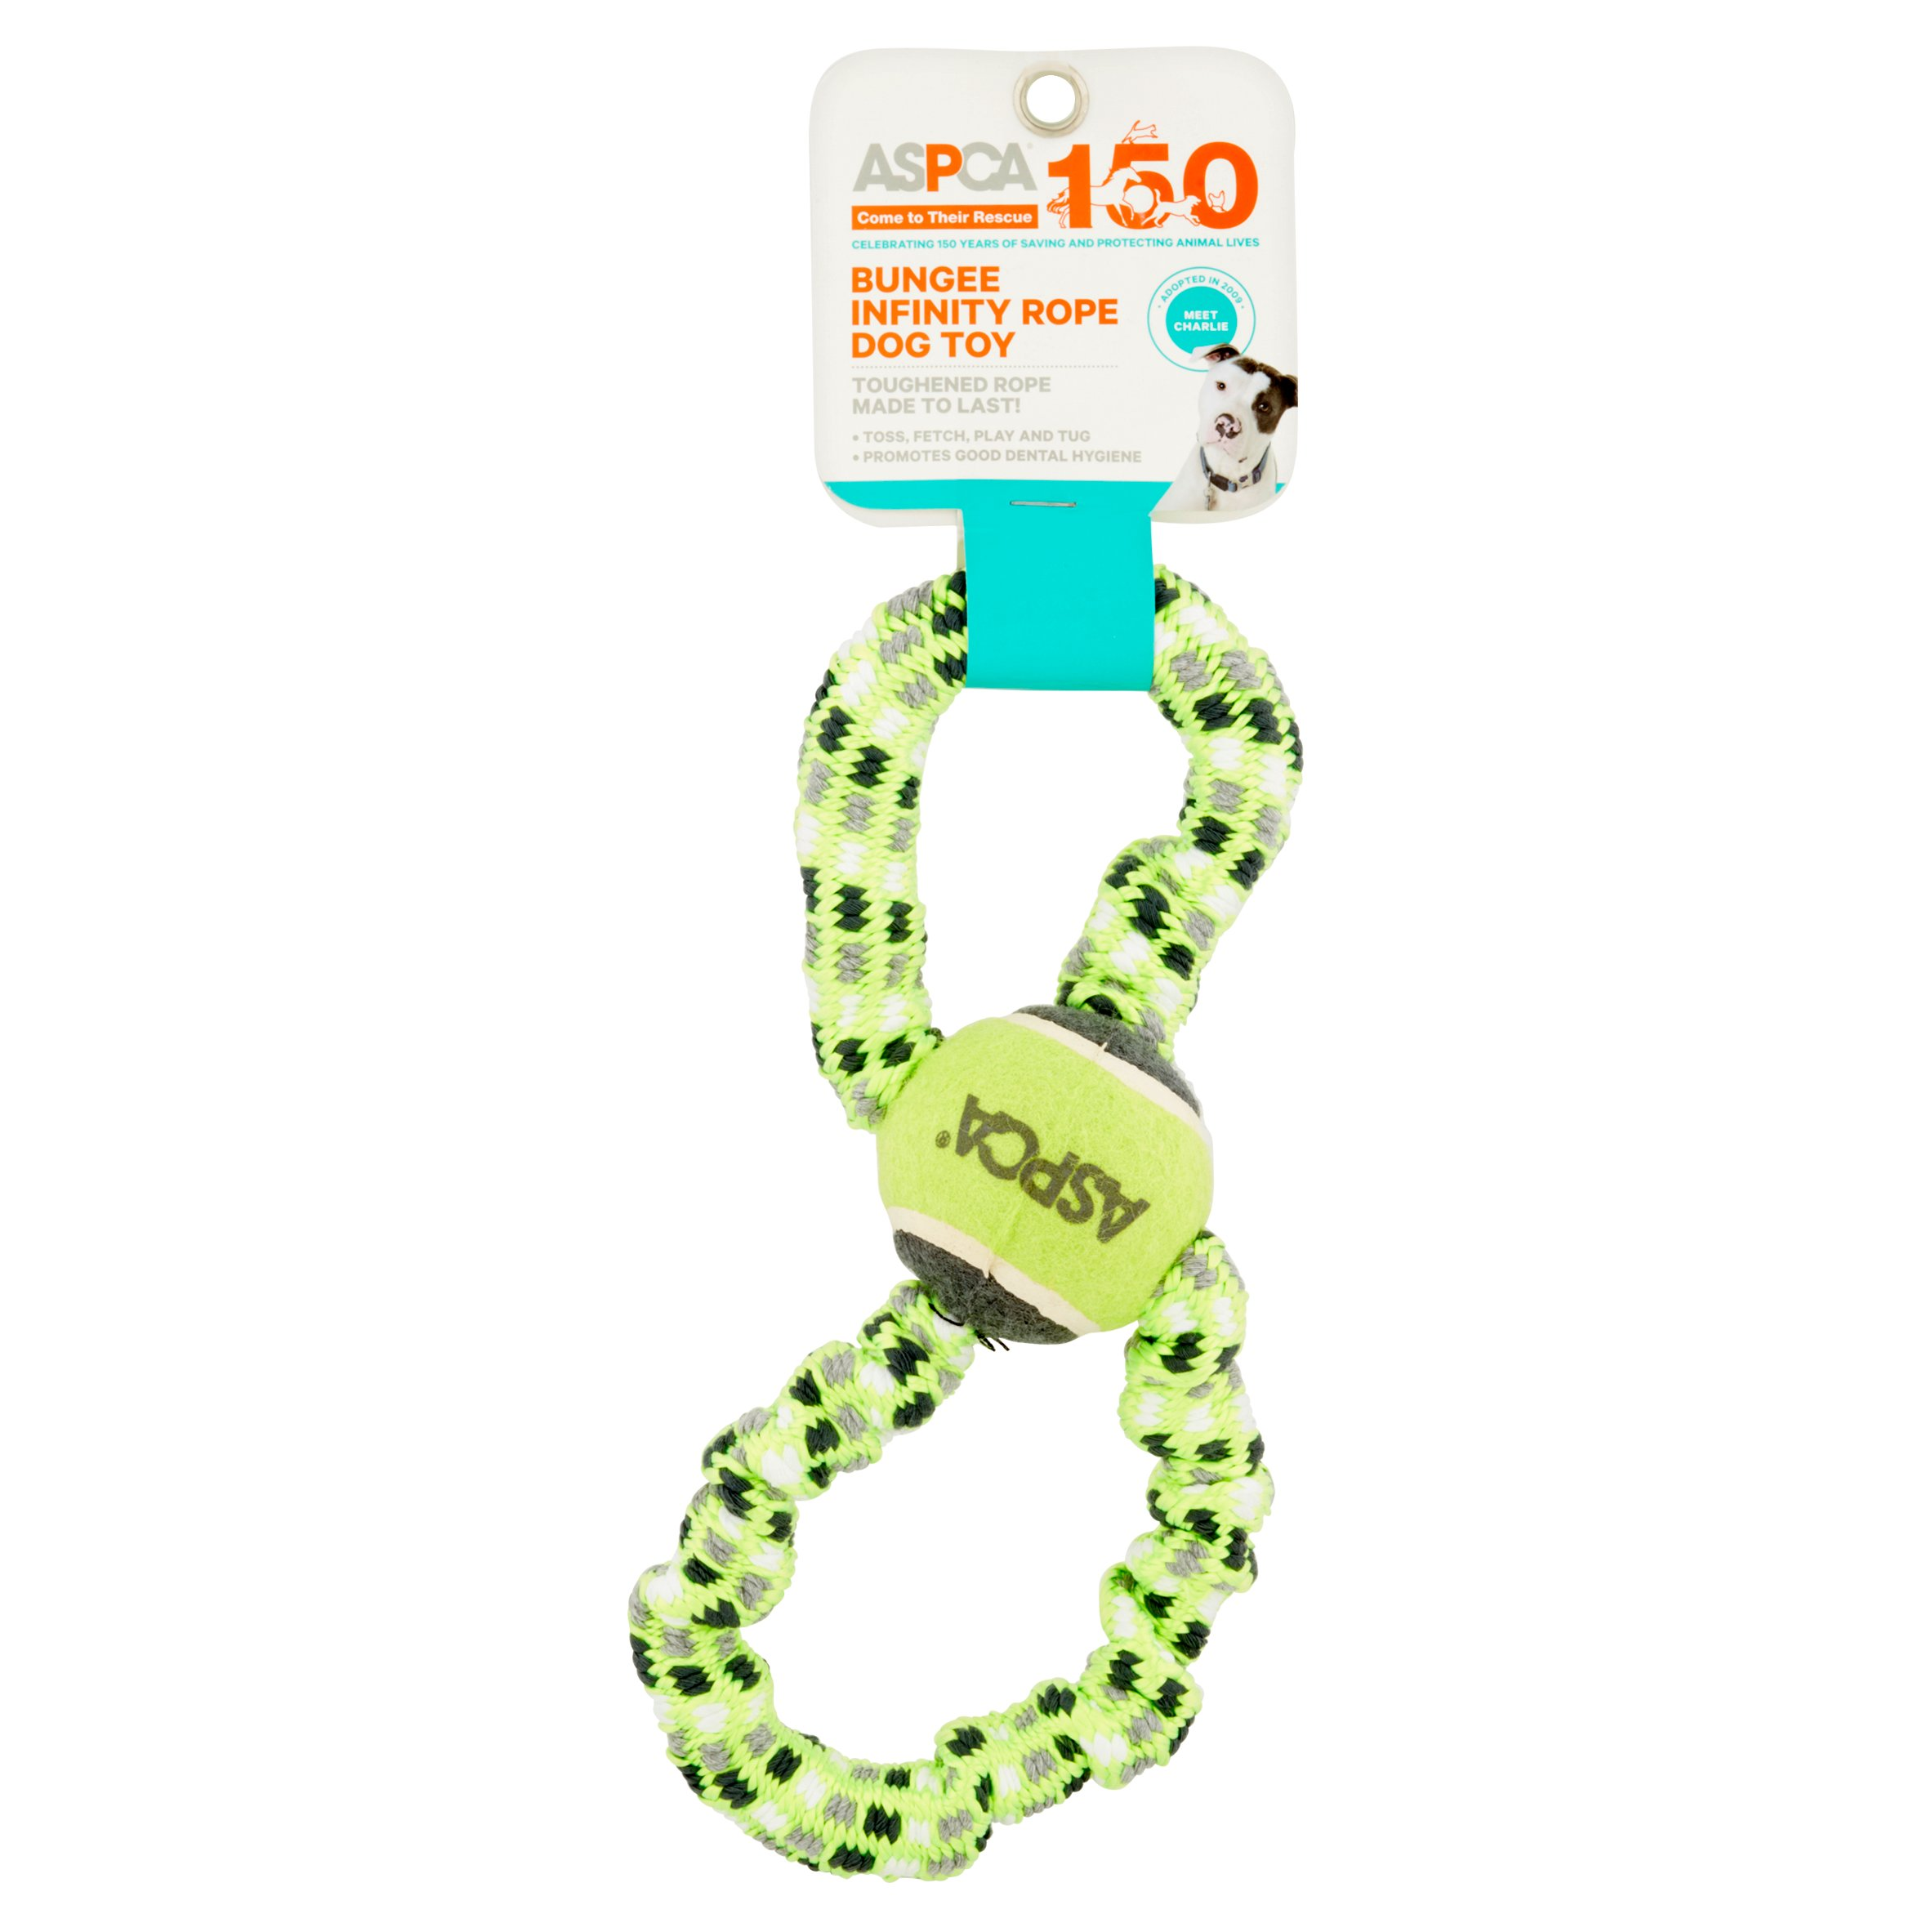 ASPCA Blue Bungee Infinity Rope Dog Toy